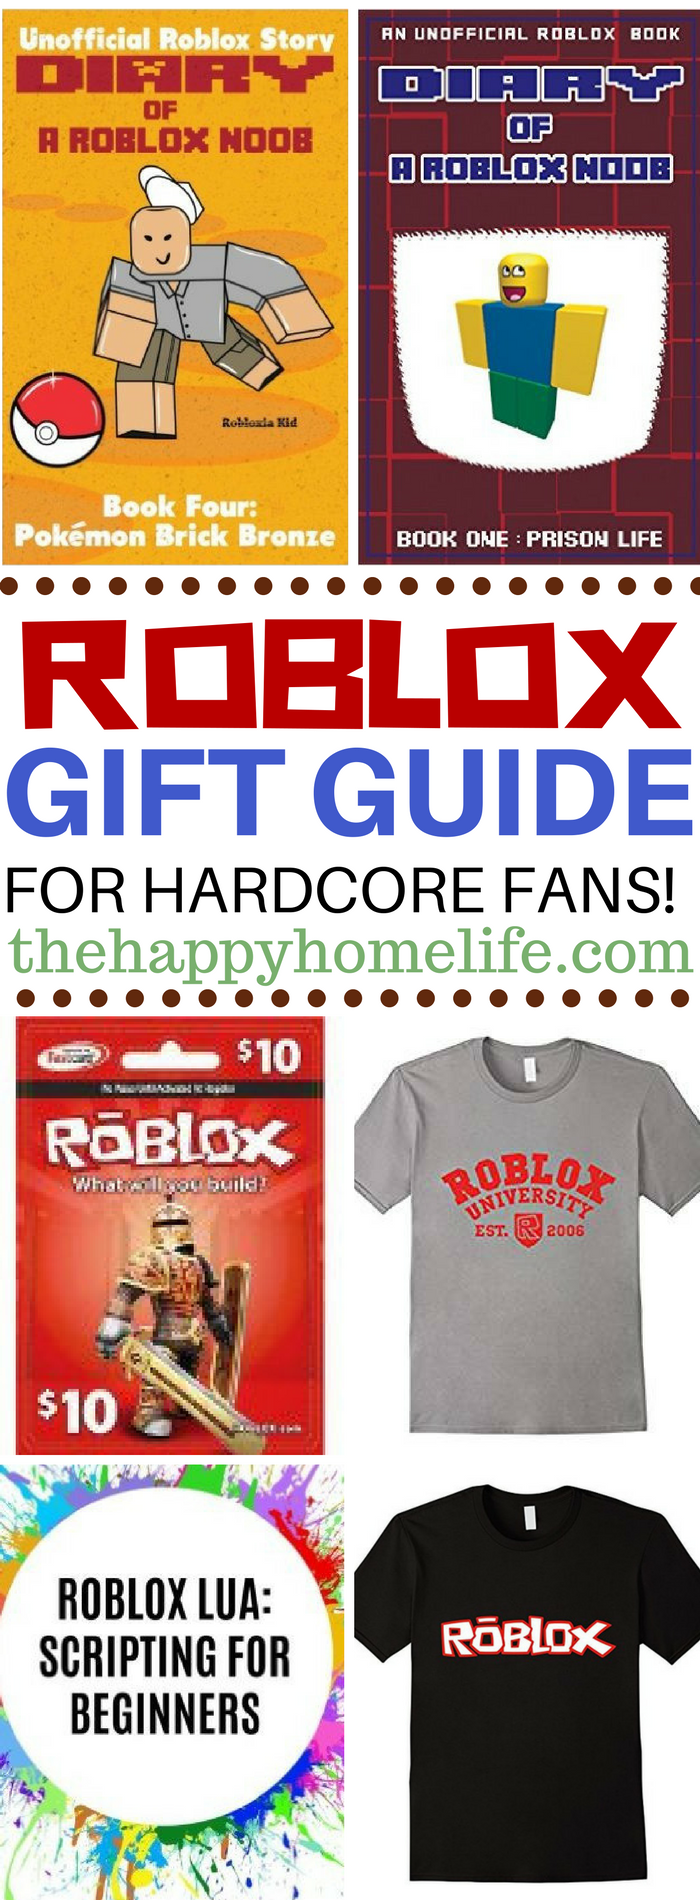 Roblox gift guide for hardcore fans gift calling all roblox fans check out this roblox gift guide to find the perfect gift baditri Gallery